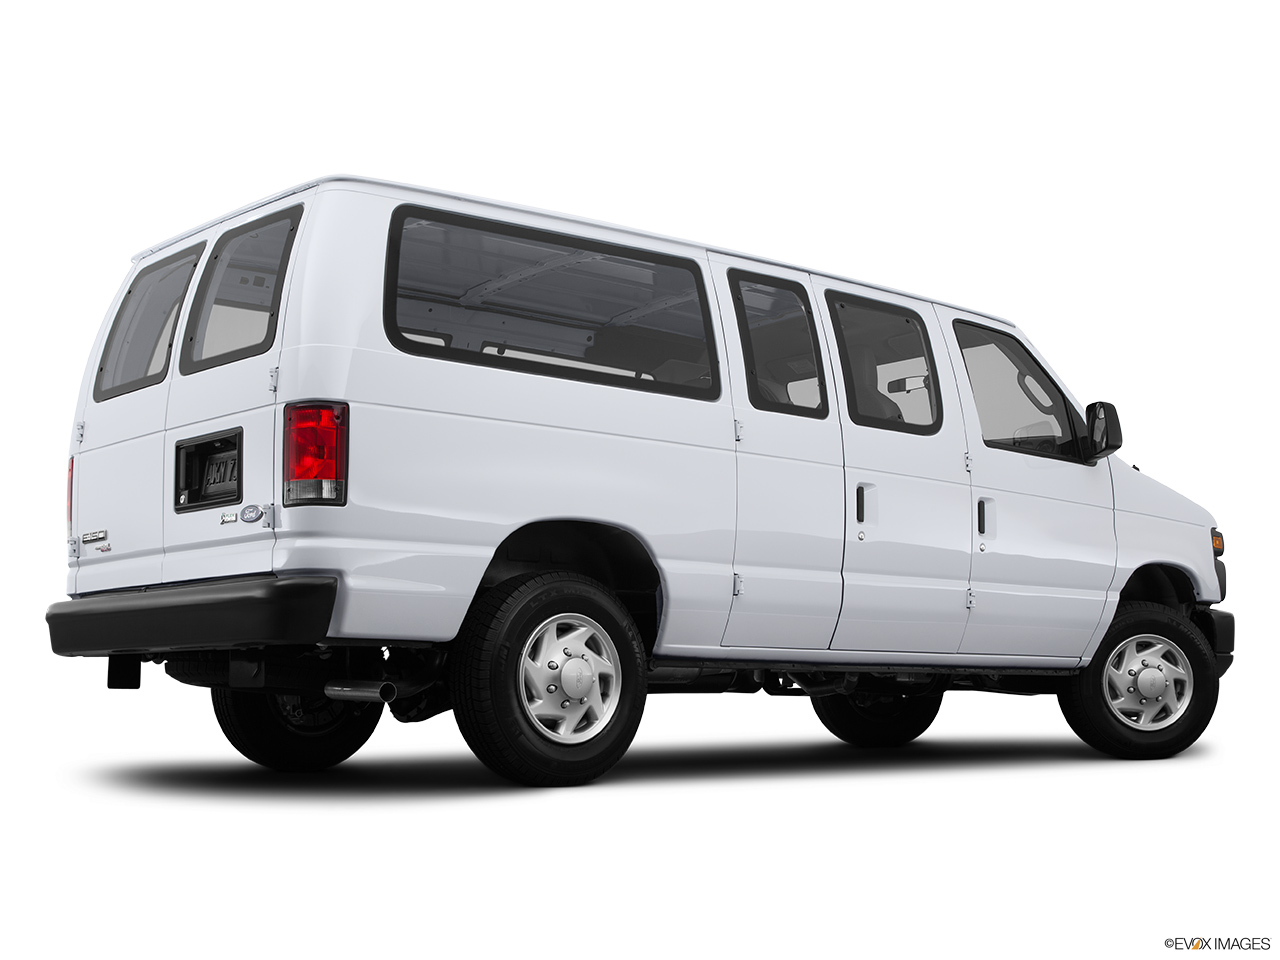 2017 Ford Econoline Van >> White Ford Van Rear | www.pixshark.com - Images Galleries With A Bite!